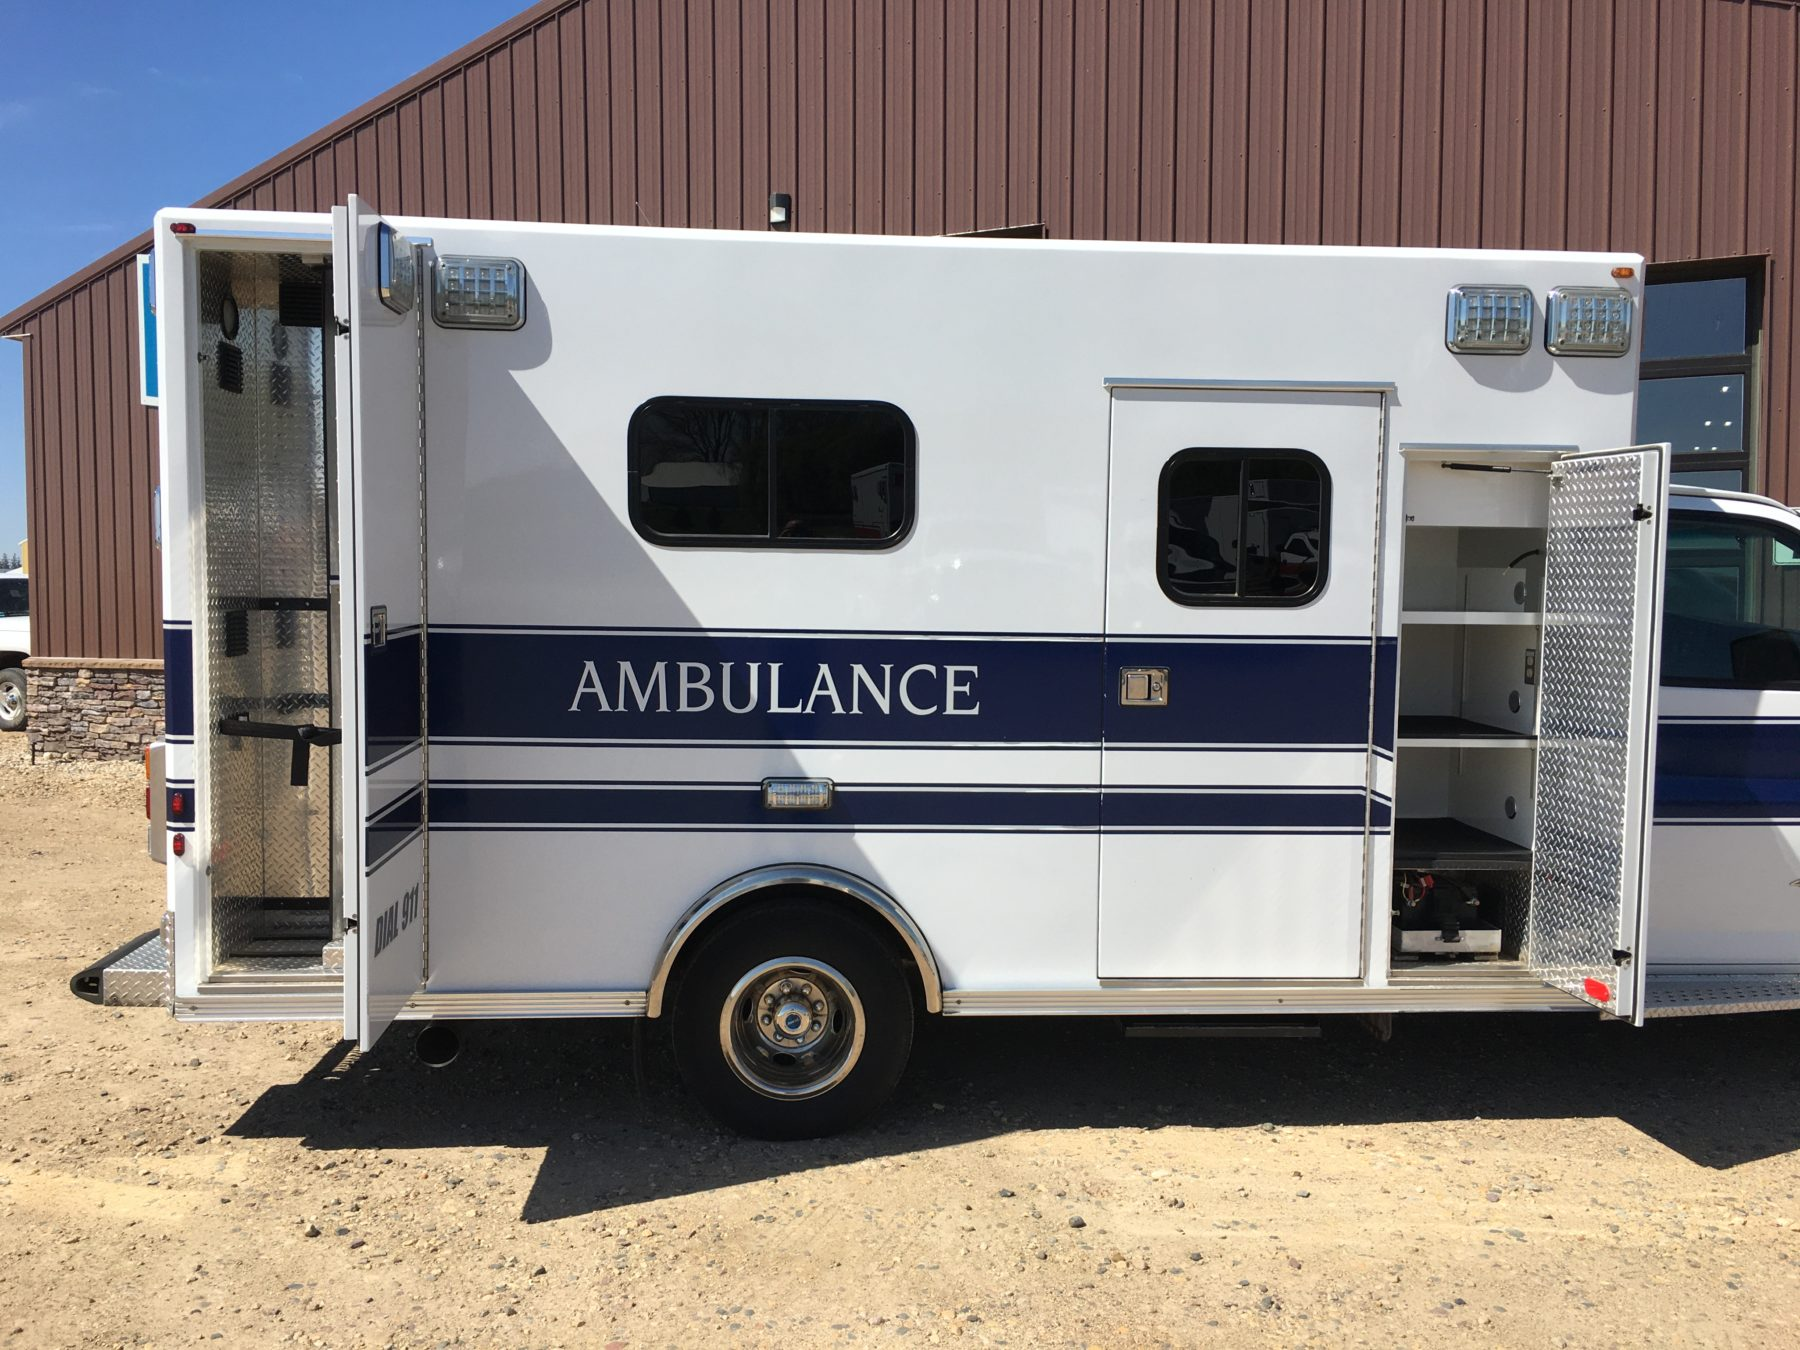 2014 Chevrolet G4500 Type 3 Ambulance For Sale – Picture 4